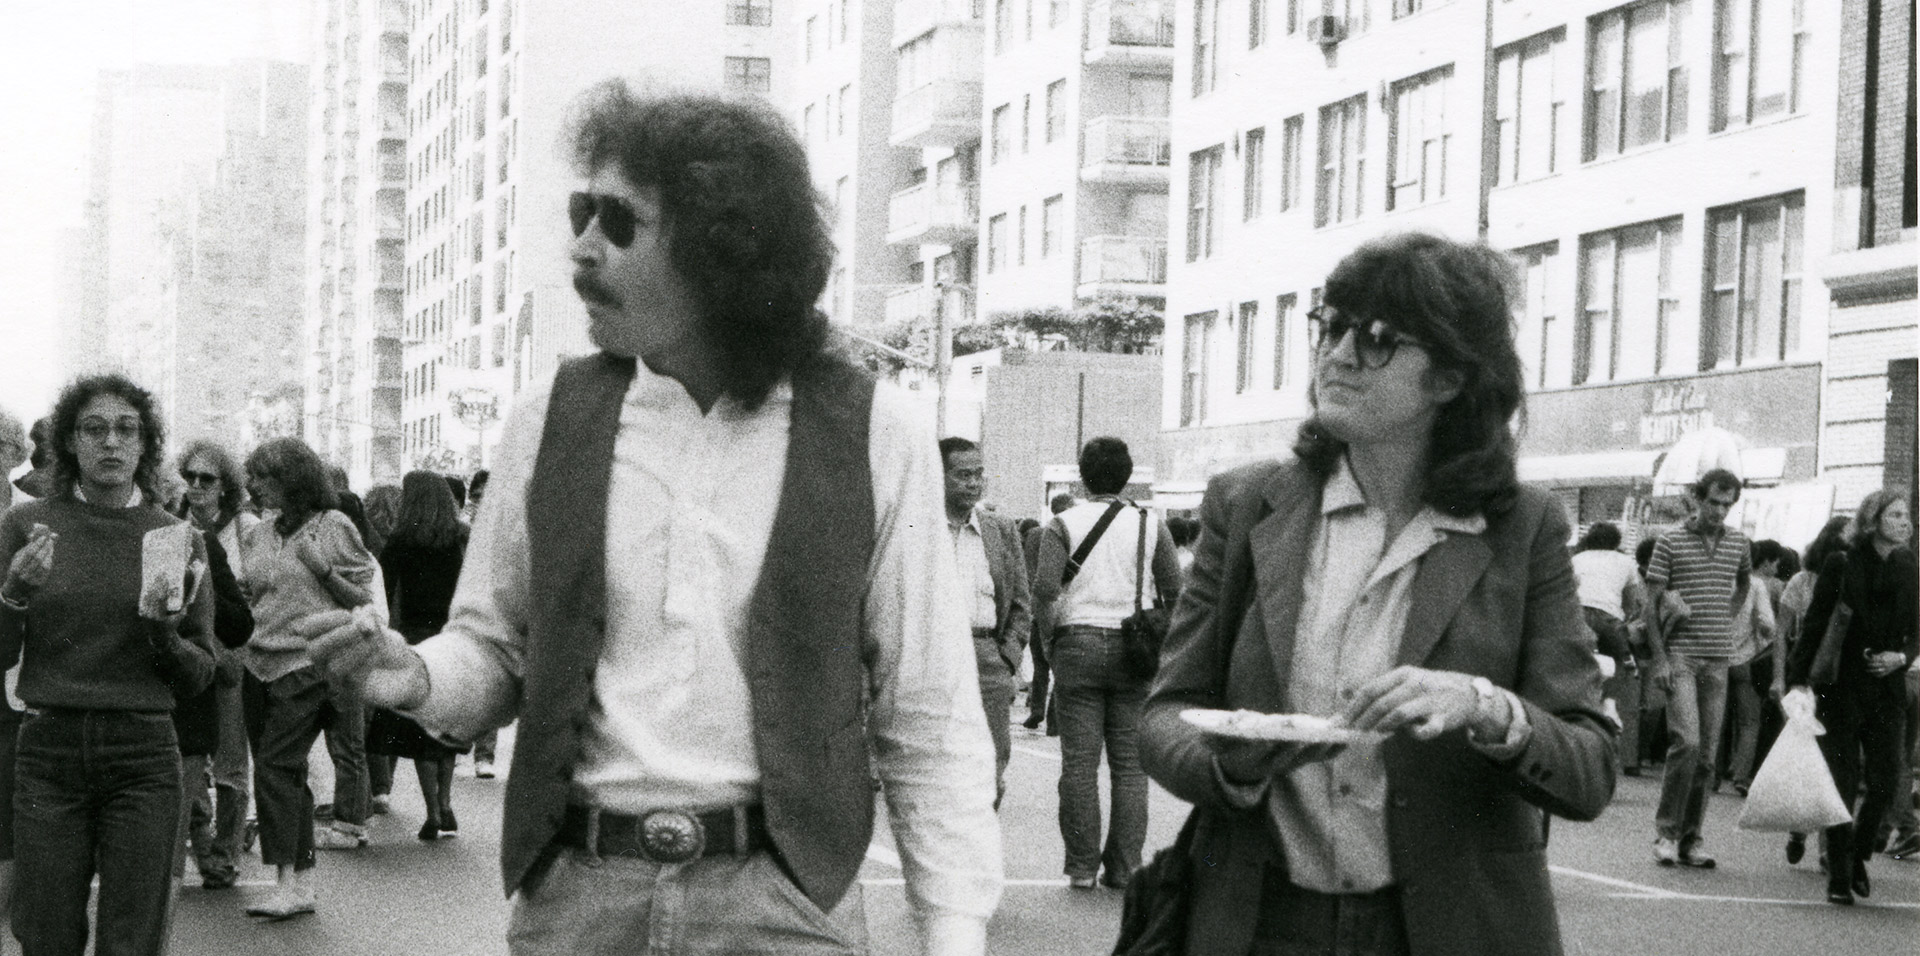 An archival photo of Doug Wheeler and Vija Celmins in New York, dated 1981.